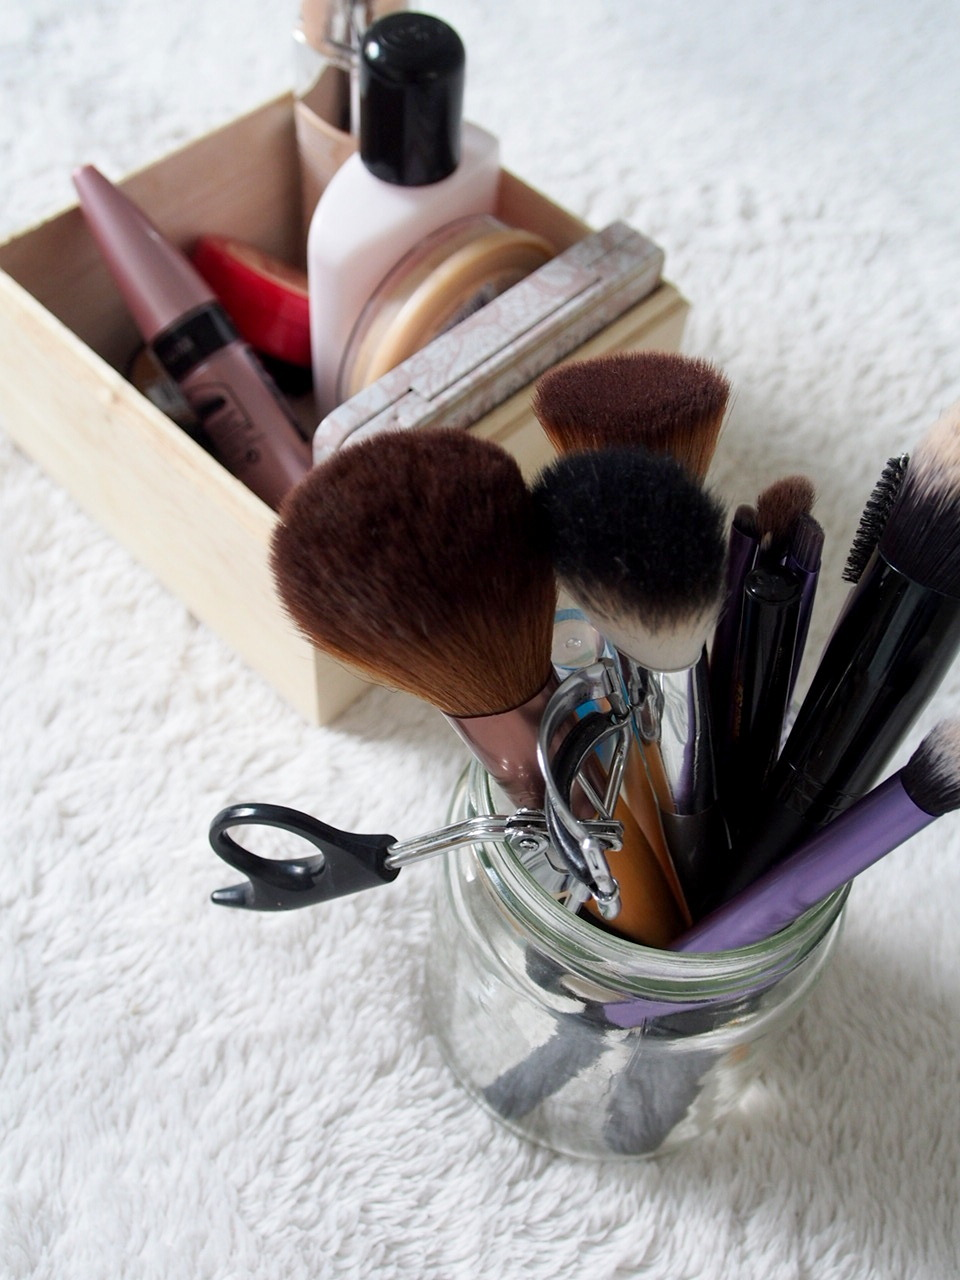 My Everyday Makeup Routine.